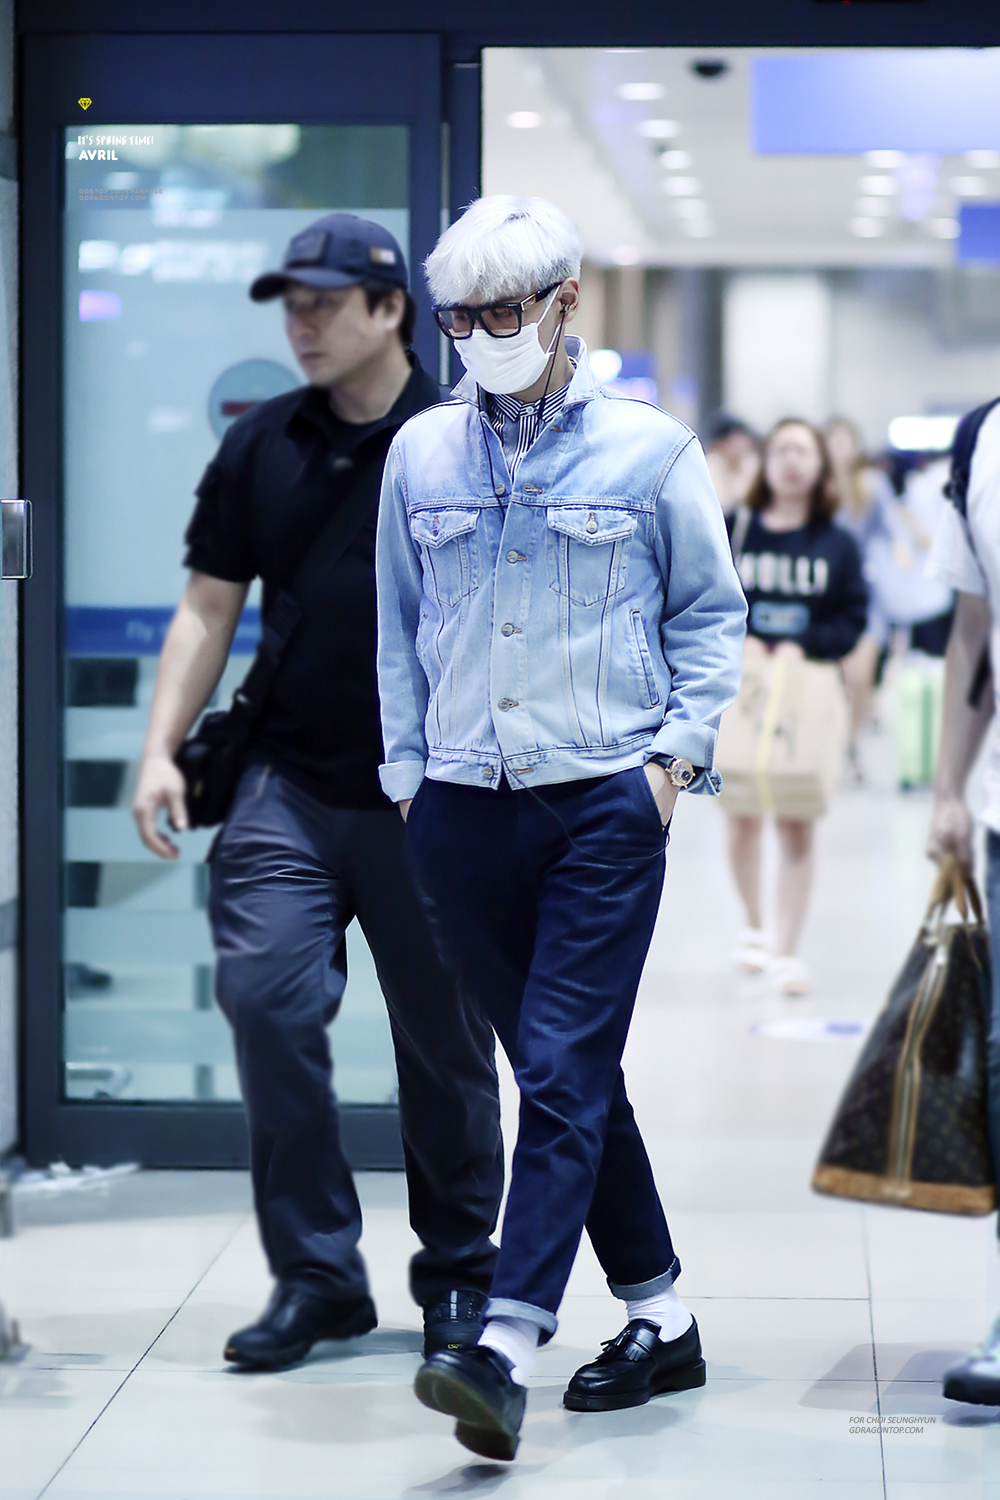 BIGBANG_arrival_Seoul_from_Chengdu_-_by_avril_gdtop_2015-08-15_5.jpg